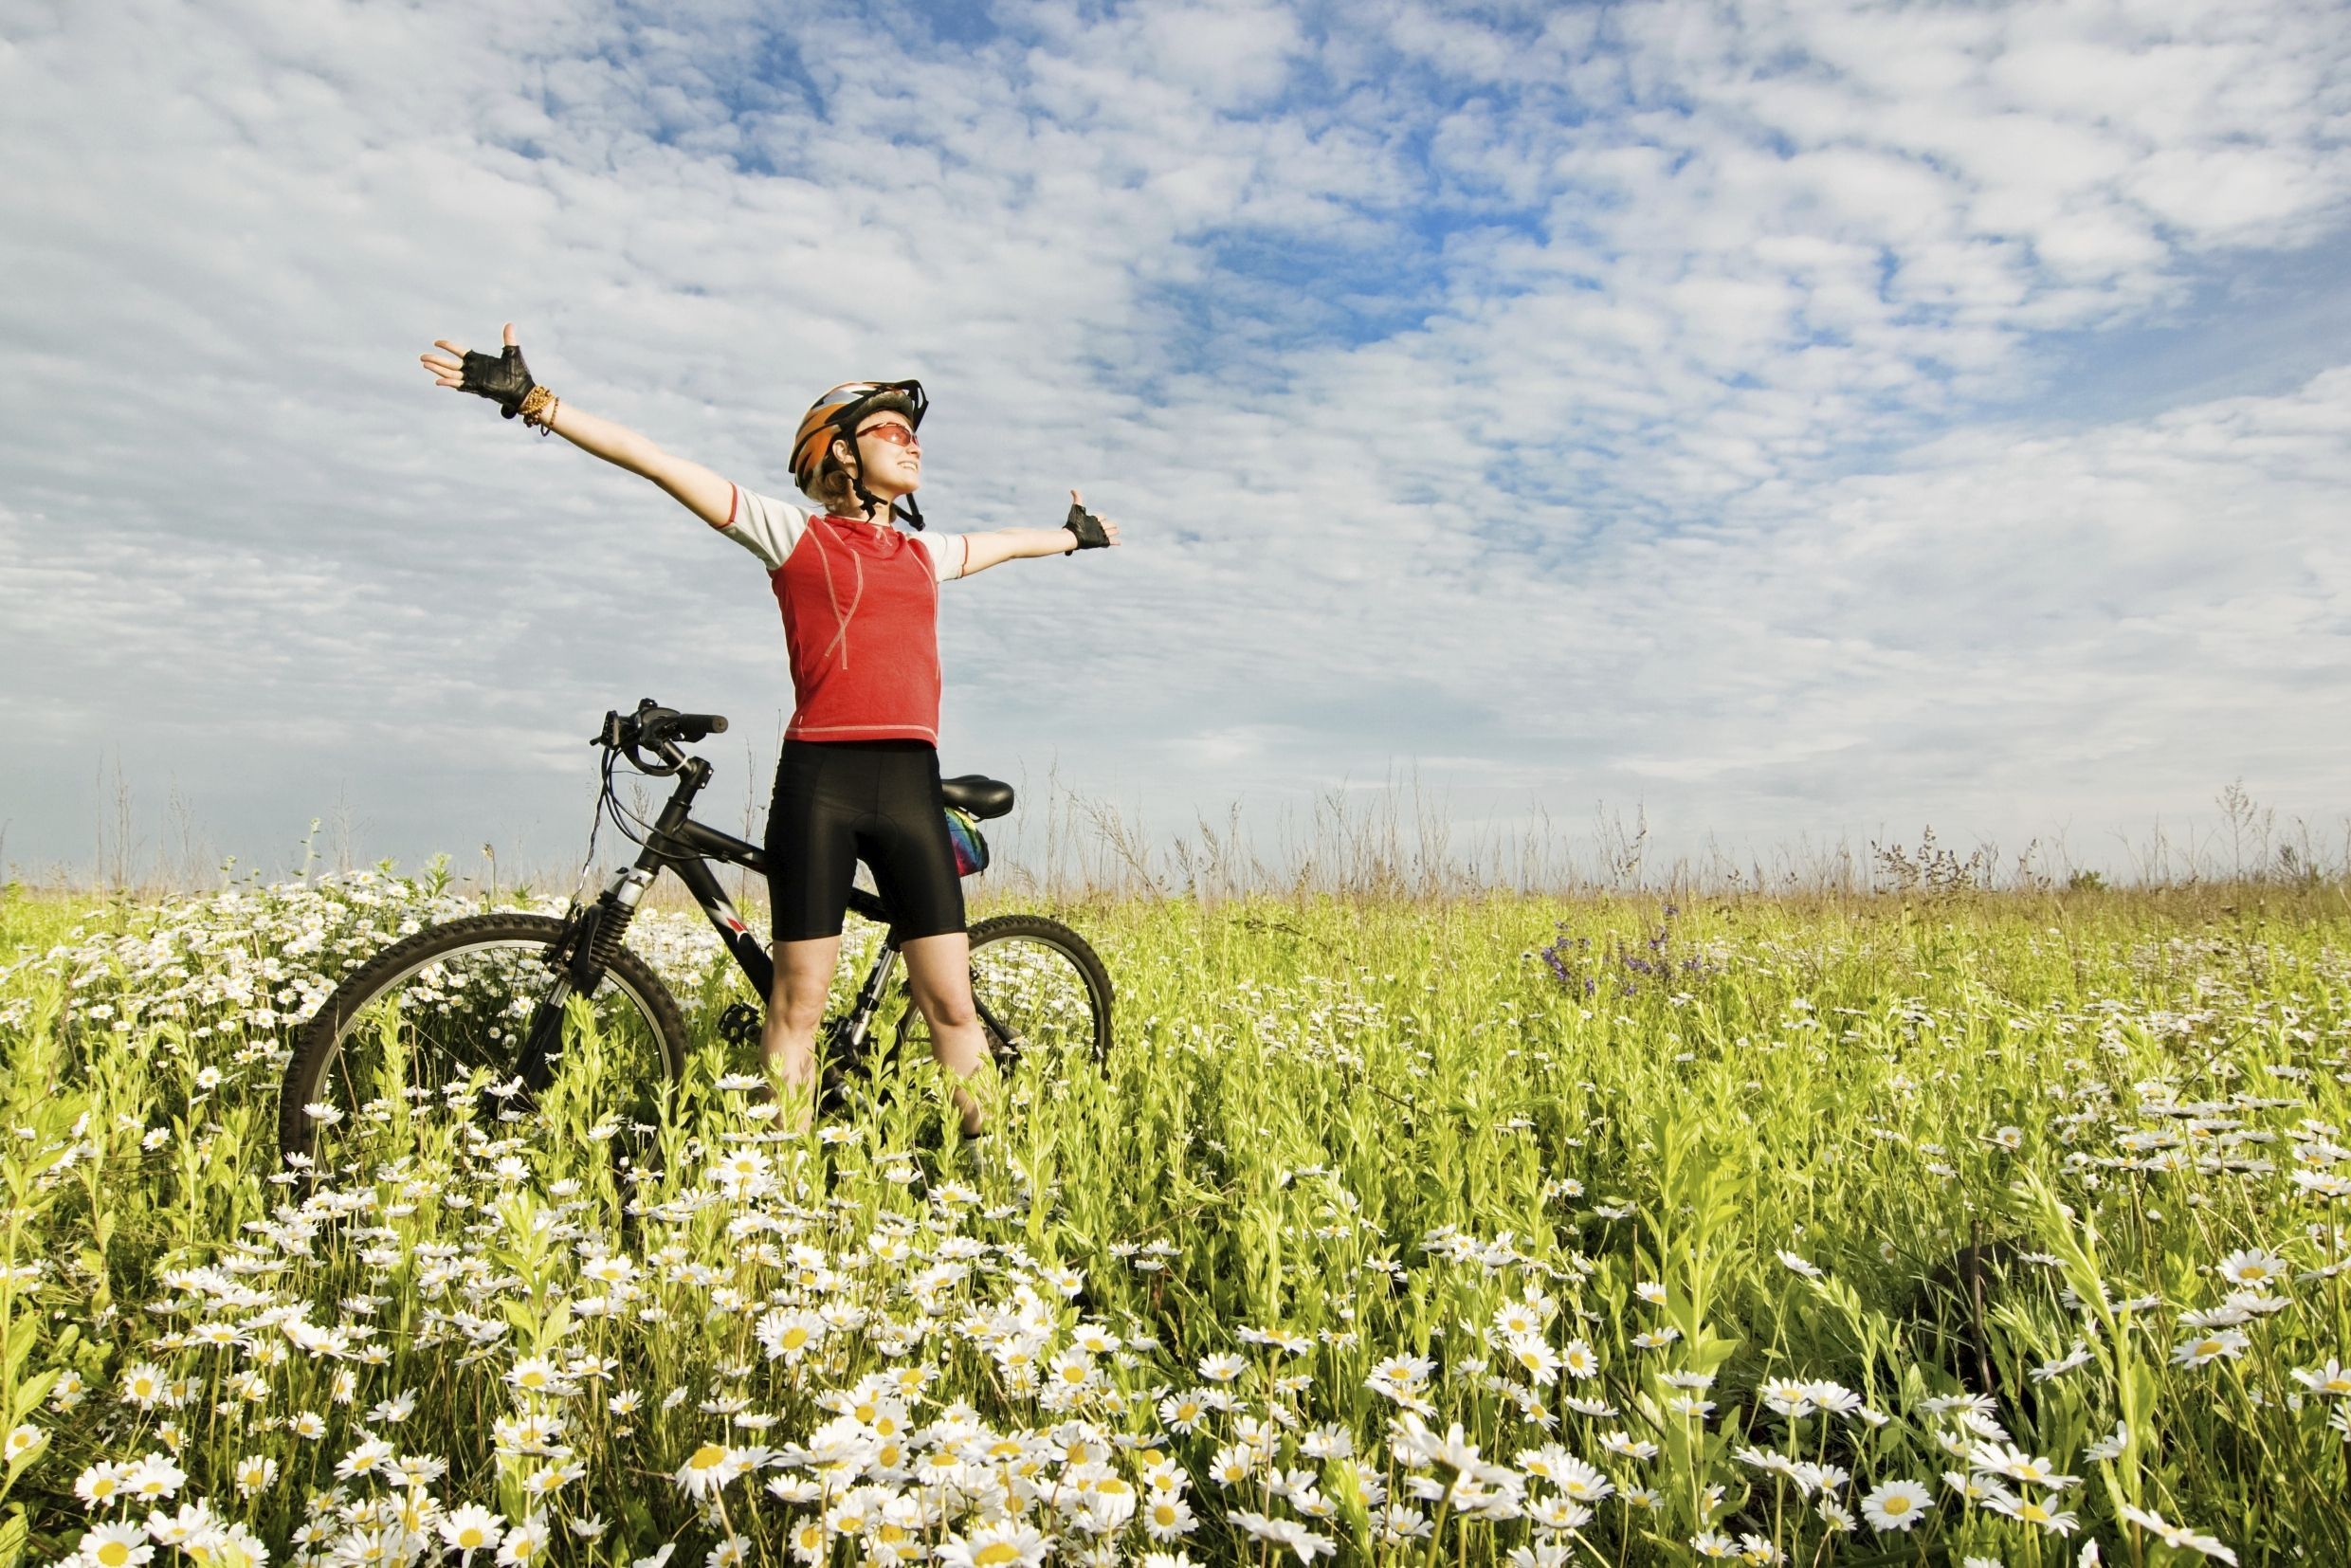 Summer's the time for cycle tours – see places you haven't seen before